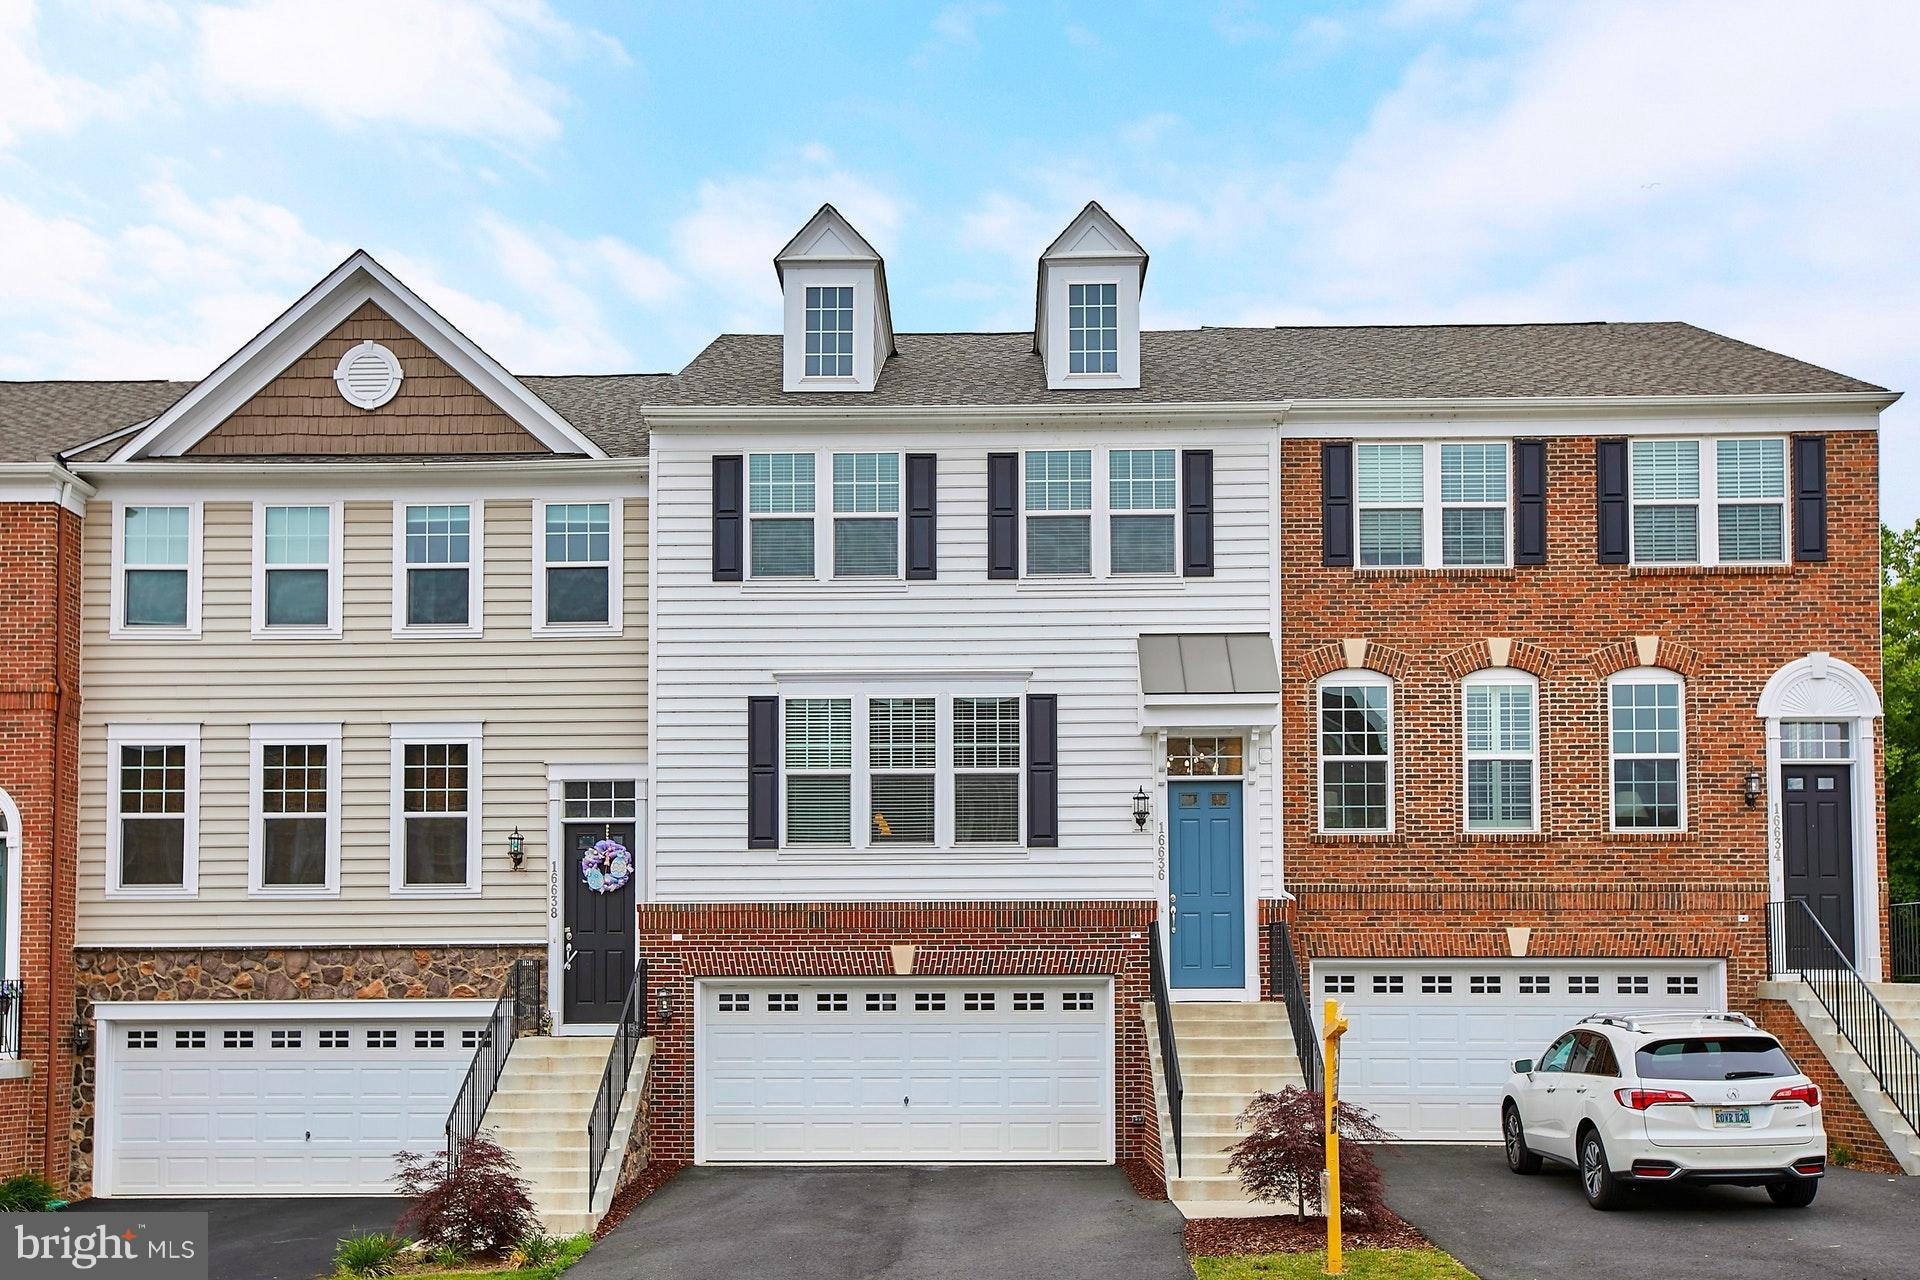 """GORGEOUS 2 YEAR YOUNG TOWNHOUSE W/2CAR GAR*PREM LOT, VERY PRIVATE W/BEAUTIFUL VIEW OF TREES*TWO STORY FOYER*HARDWWOOD FLOORS ON MAIN LEVEL*LIVING ROOM W/GAS FIREPLACE*GOURMET KITCHEN W/42"""" MAPLE CABINETRY, GRANITE COUNTERS ,UPGRADED STAINLESS STEEL APPLIANCESS (TO INCL GAS COOKTOP, BUILT-IN DBL OVEN, REFRIGERATOR W/ICE MAKER & WATER DISPENSER, DISHWASHER), LARGE CENTER ISLAND W/PENDANT LIGHTS*WALK-IN PANTRY*SEPARATE DINING  RM W/DOOR TO DECK*SPACIOUS MASTER BEDROOM SUITE W/WALK-IN CLOSET & LUXURY BATH   W/TUB & SEPARATE SHOWER, DOUBLE VANITY W/GRANITE COUNTERS, UPGRADED CERAMIC TILE, WATER CLOSET*UPPER LVL LAUNDRY*FINISHED  WALKOUT LOWER LEVEL W/LARGE RECREATION ROOM & FULL BATH ROOM*GREAT COMMUTE W/EASY ACCESS TO ROUTES 1, 95 AND TWO VIRGINIA RAILWAY EXPRESS (VRE) STATIONS,  A COMMUTER BUS (PRTC) THAT TAKES RIDERS DIRECTLY TO WASHINGTON, DC, PENTAGON & MORE LOCATIONS*CLOSE TO QUANTICO, FORT BELVOIR, RESTAURANTS, SHOPPING AT POTOMAC MILLS MALL AND POTOMAC TOWN CENTER*HOA AMENITIES INCLUDE USE OF A CLUB HOUSE, OUTDOOR POOL, TOT LOTS, BASKETBALL COURTS & TENNIS COURTS, TRASH/SNOW REMOVAL AND COMMON AREA MAINTENANCE*ENJOY TRAILS AND WALKWAY ALONG NEABSCO & POWELLS CREEKS ADJACENT TO THE POTOMAC RIVER & LEESYLVANIA STATE PARK!"""